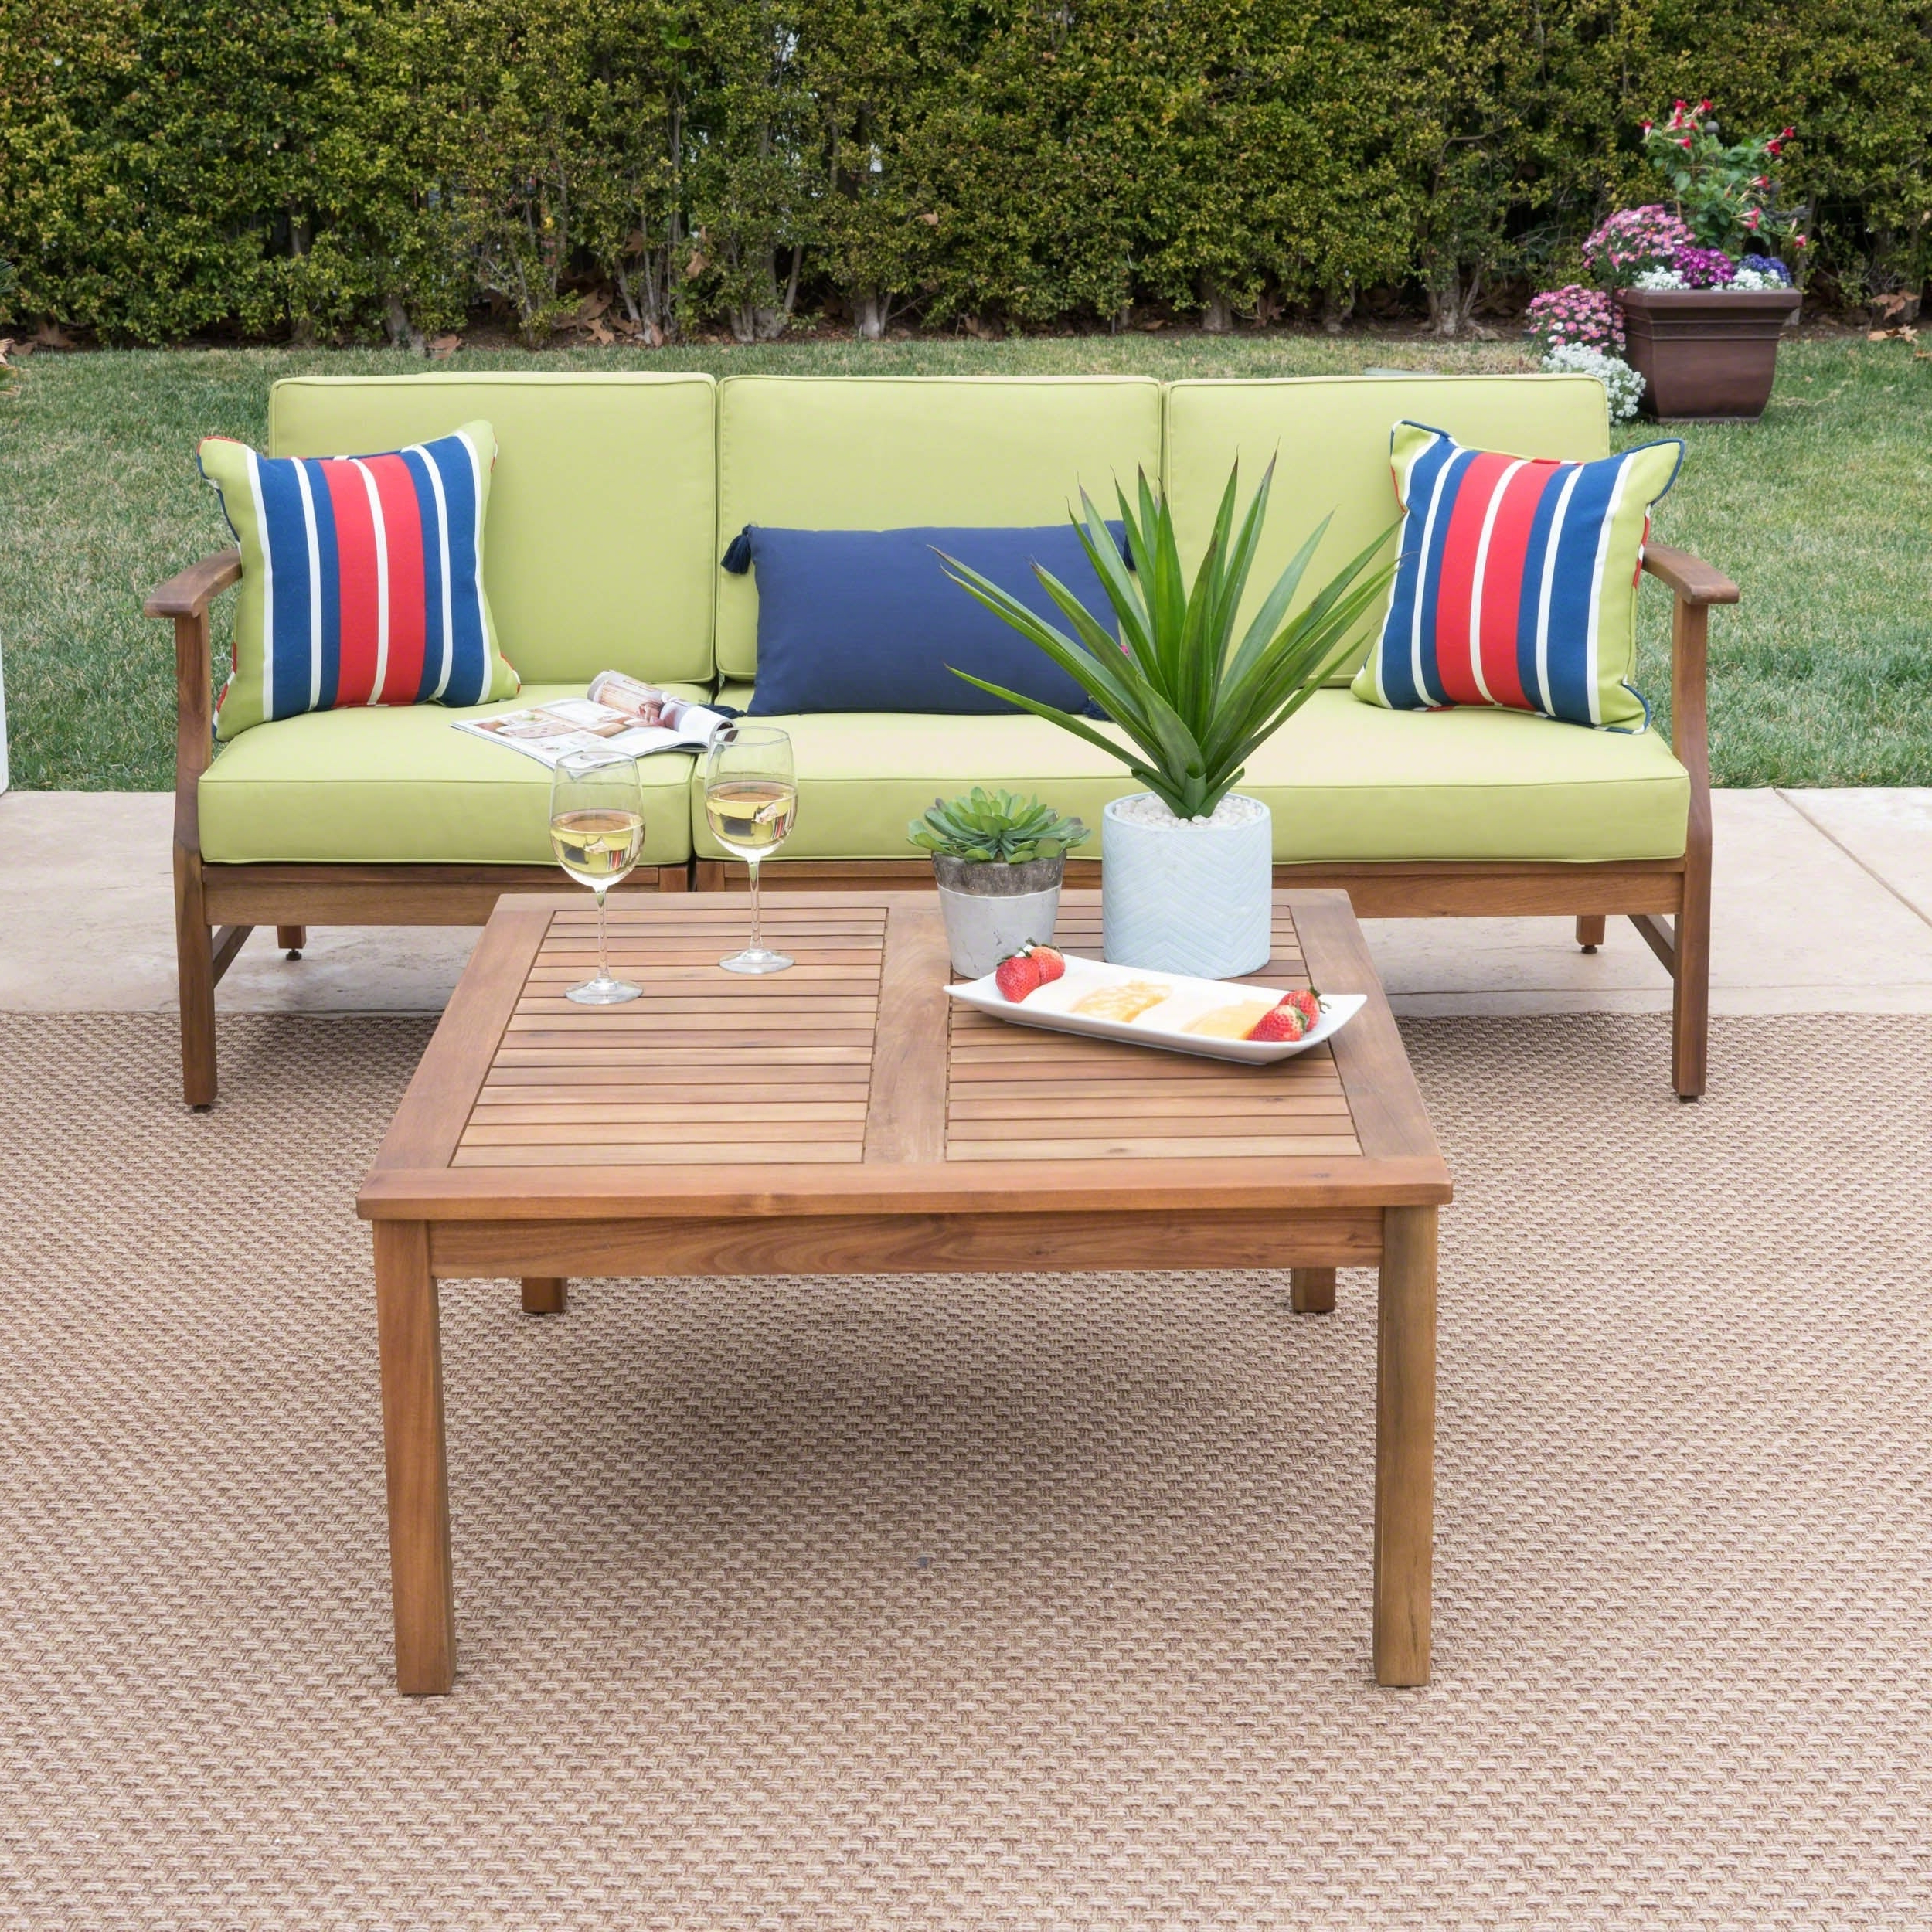 Newest O'kean Teak Patio Sofas With Cushions With Regard To Perla Outdoor Acacia Wood 4 Piece Sofa And Table Set With Cushions Christopher Knight Home (View 13 of 25)